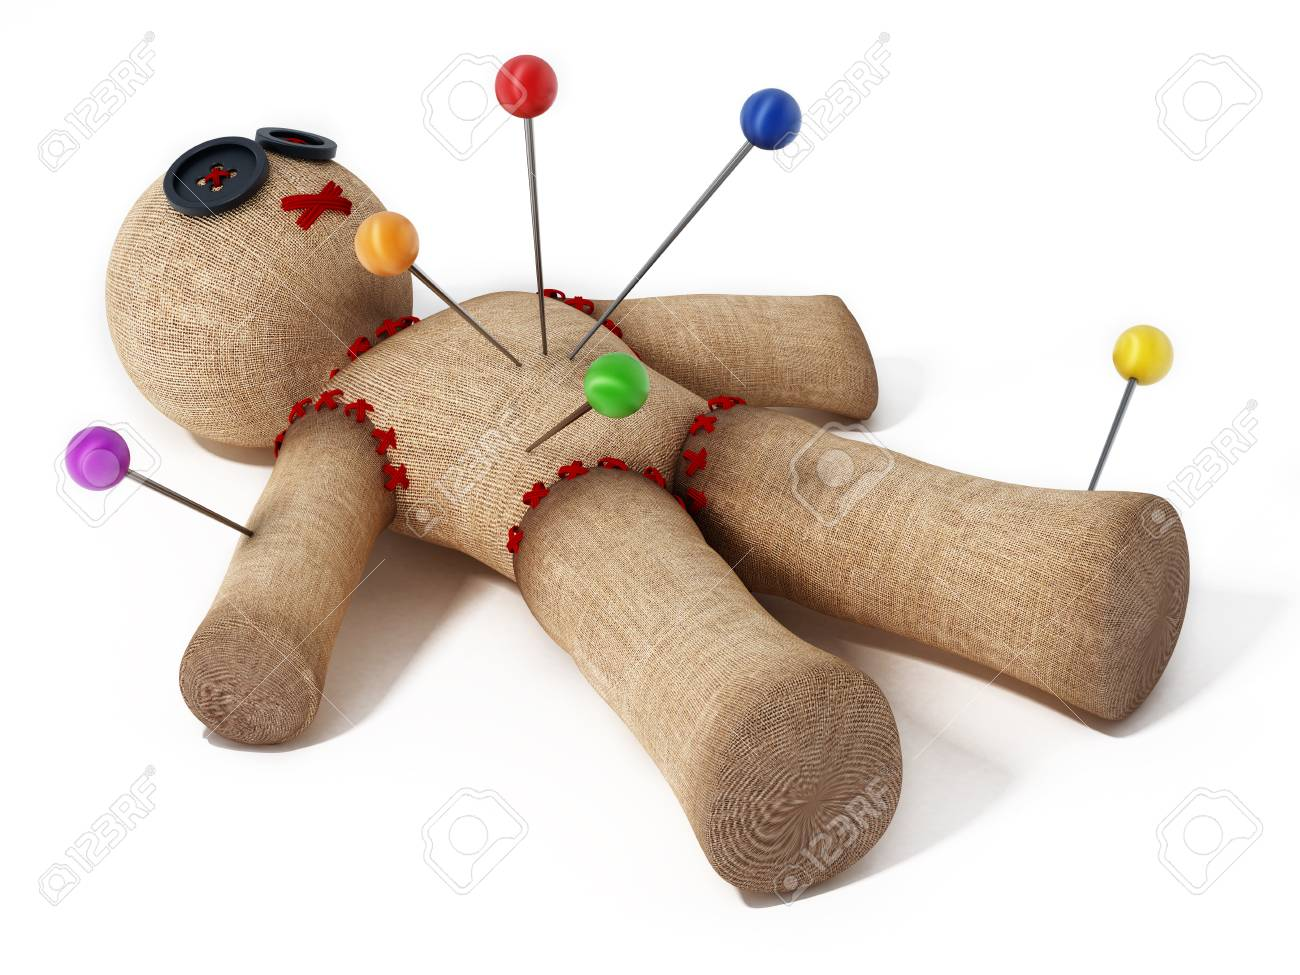 Voodoo Doll With Needles Isolated On White Background. Stock Photo, Picture And Royalty Free Image. Image 98756680.